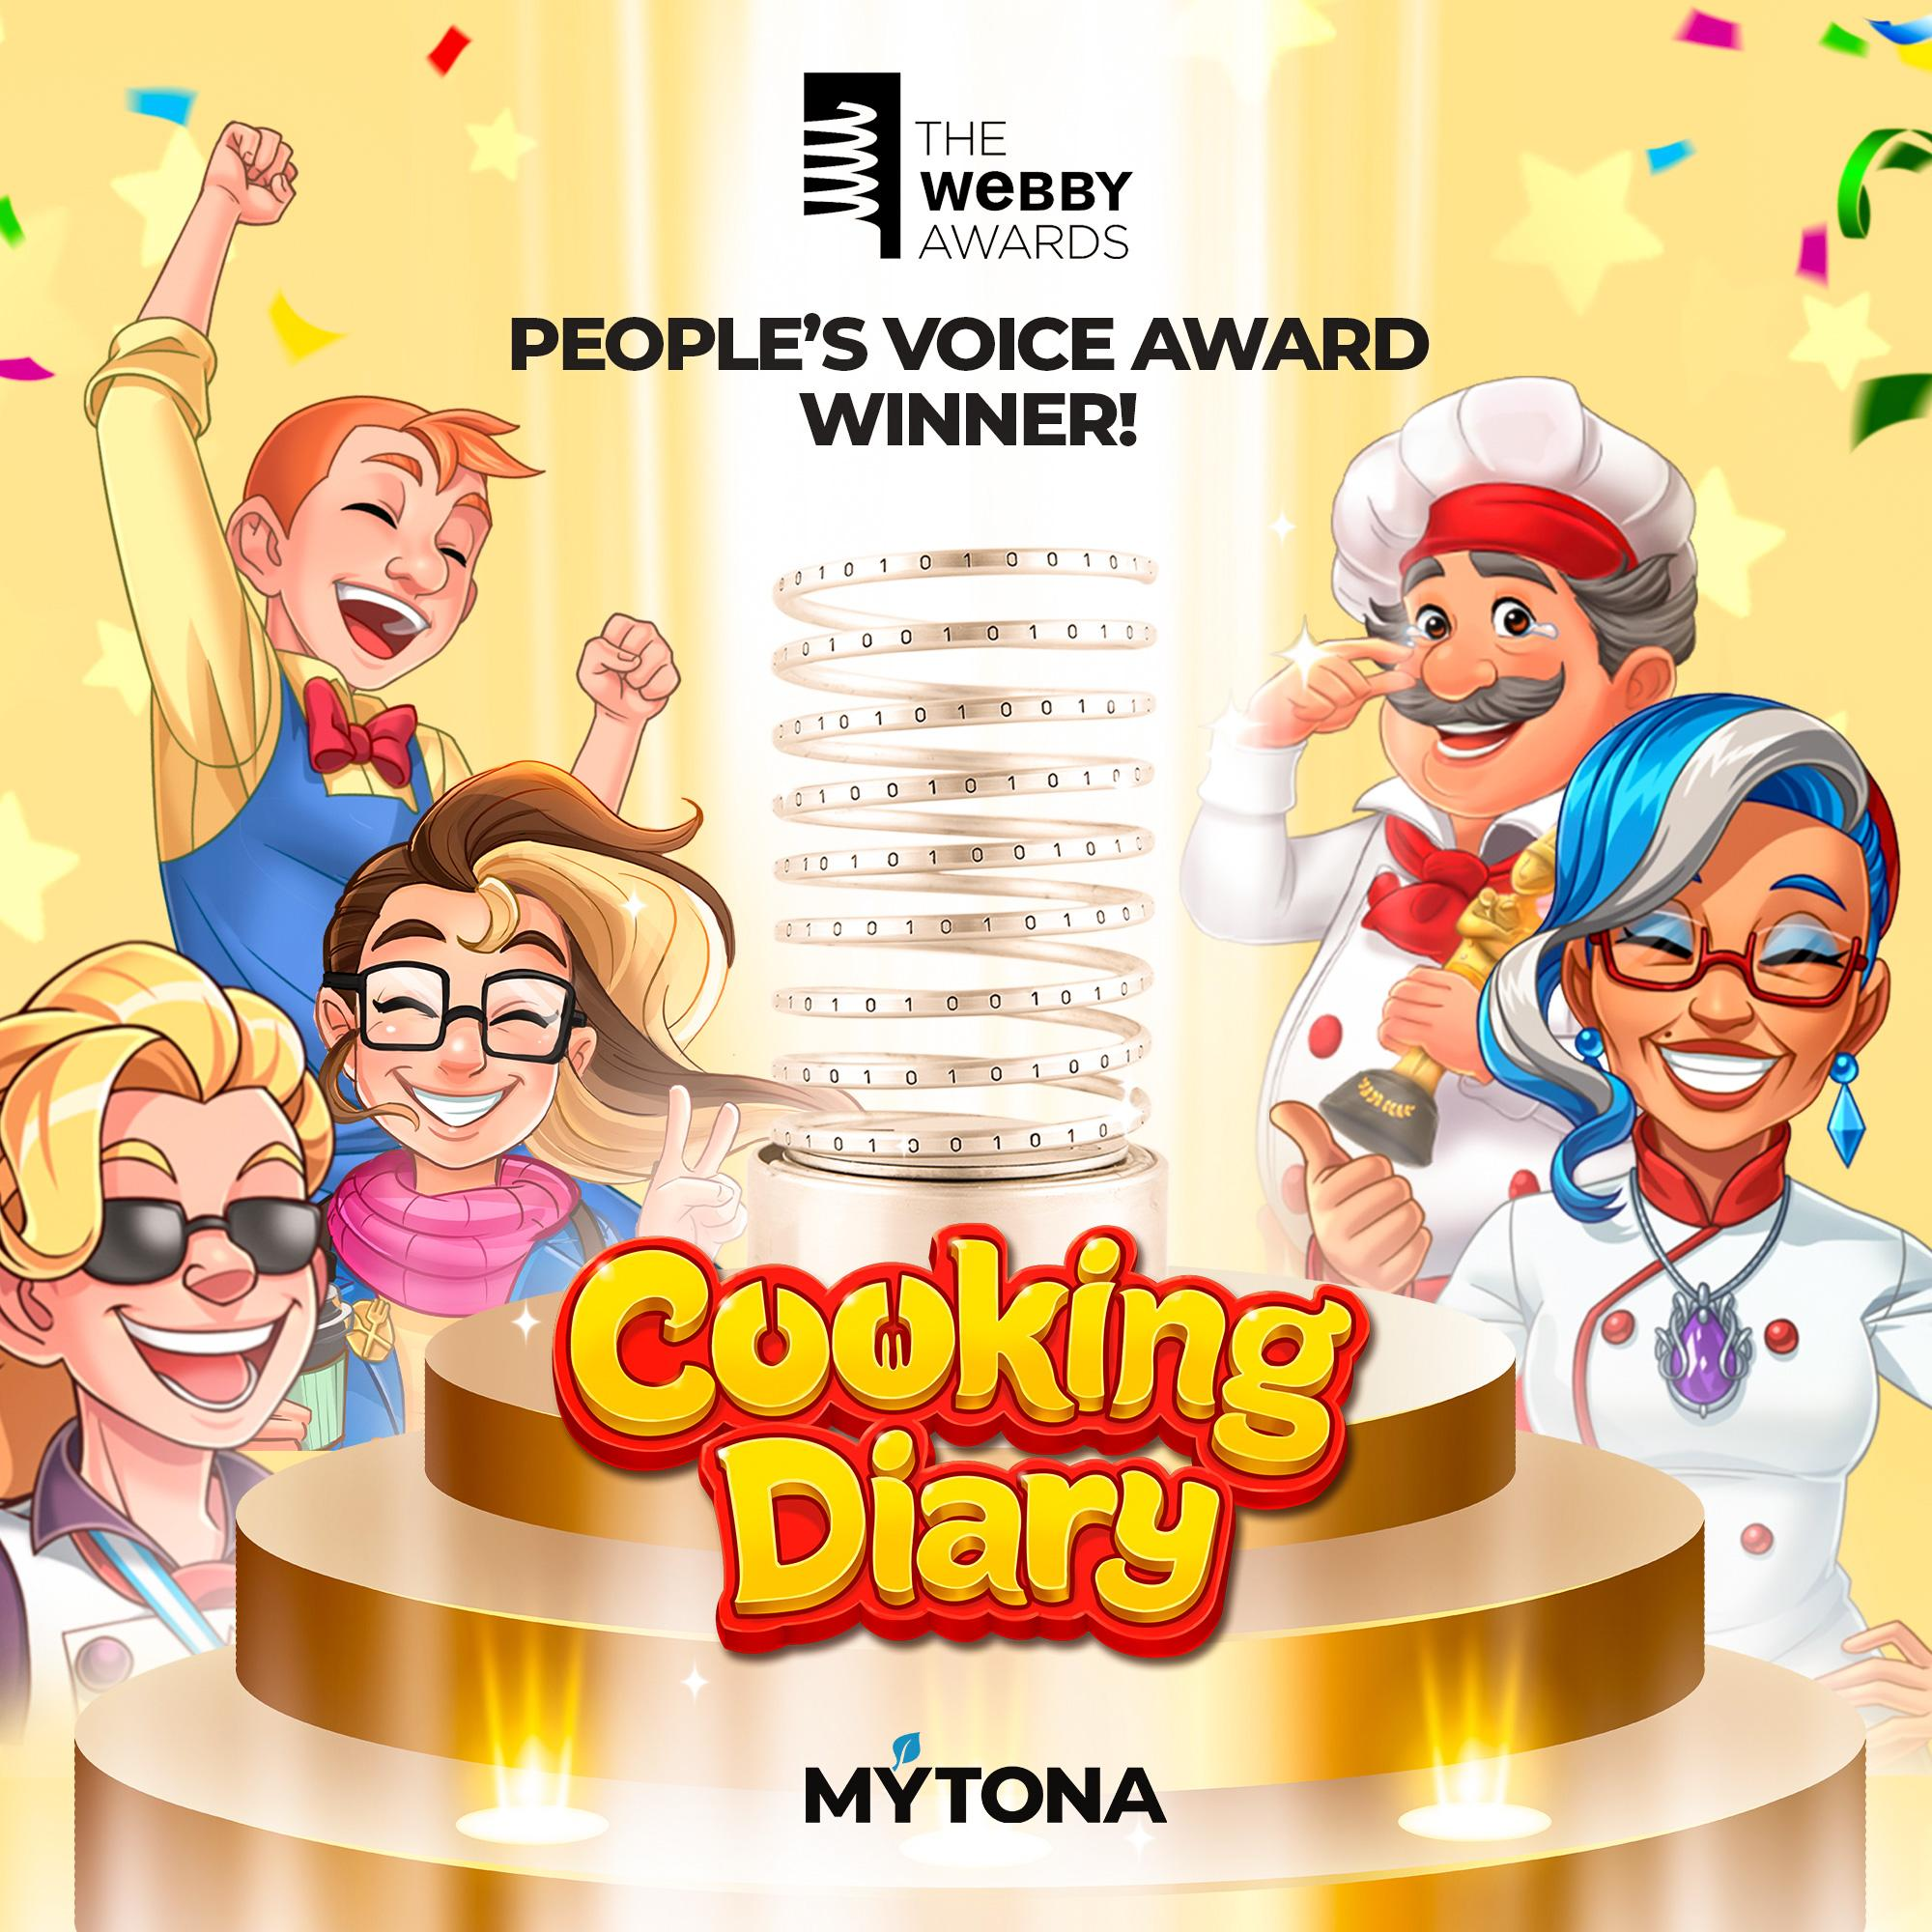 Cooking Diary Receives People's Voice Award at the Webby Awards 2020!